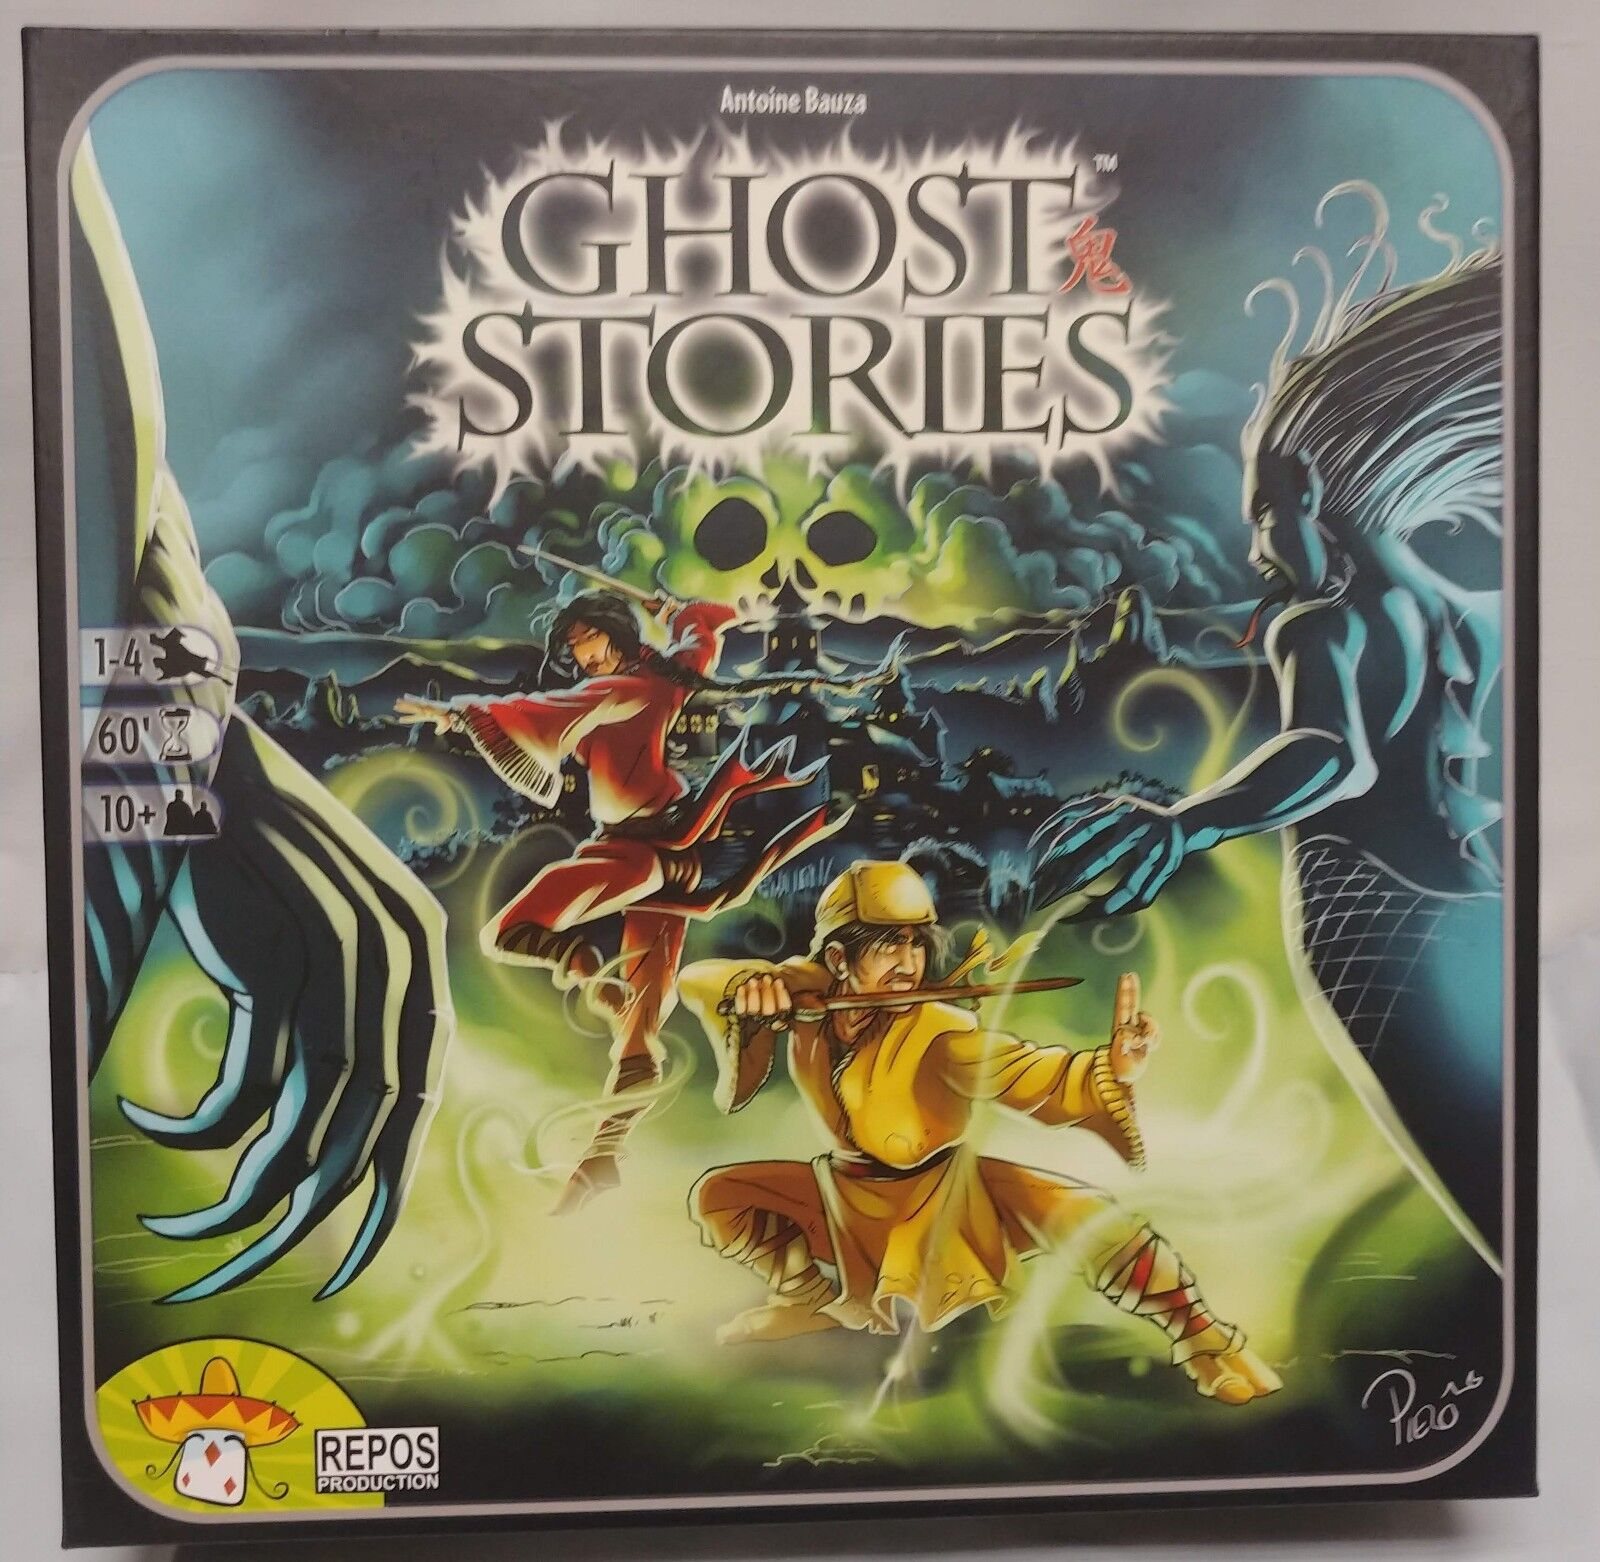 Ghost Stories Board Game Antoine Bauza 1-4 players Dice Board Game